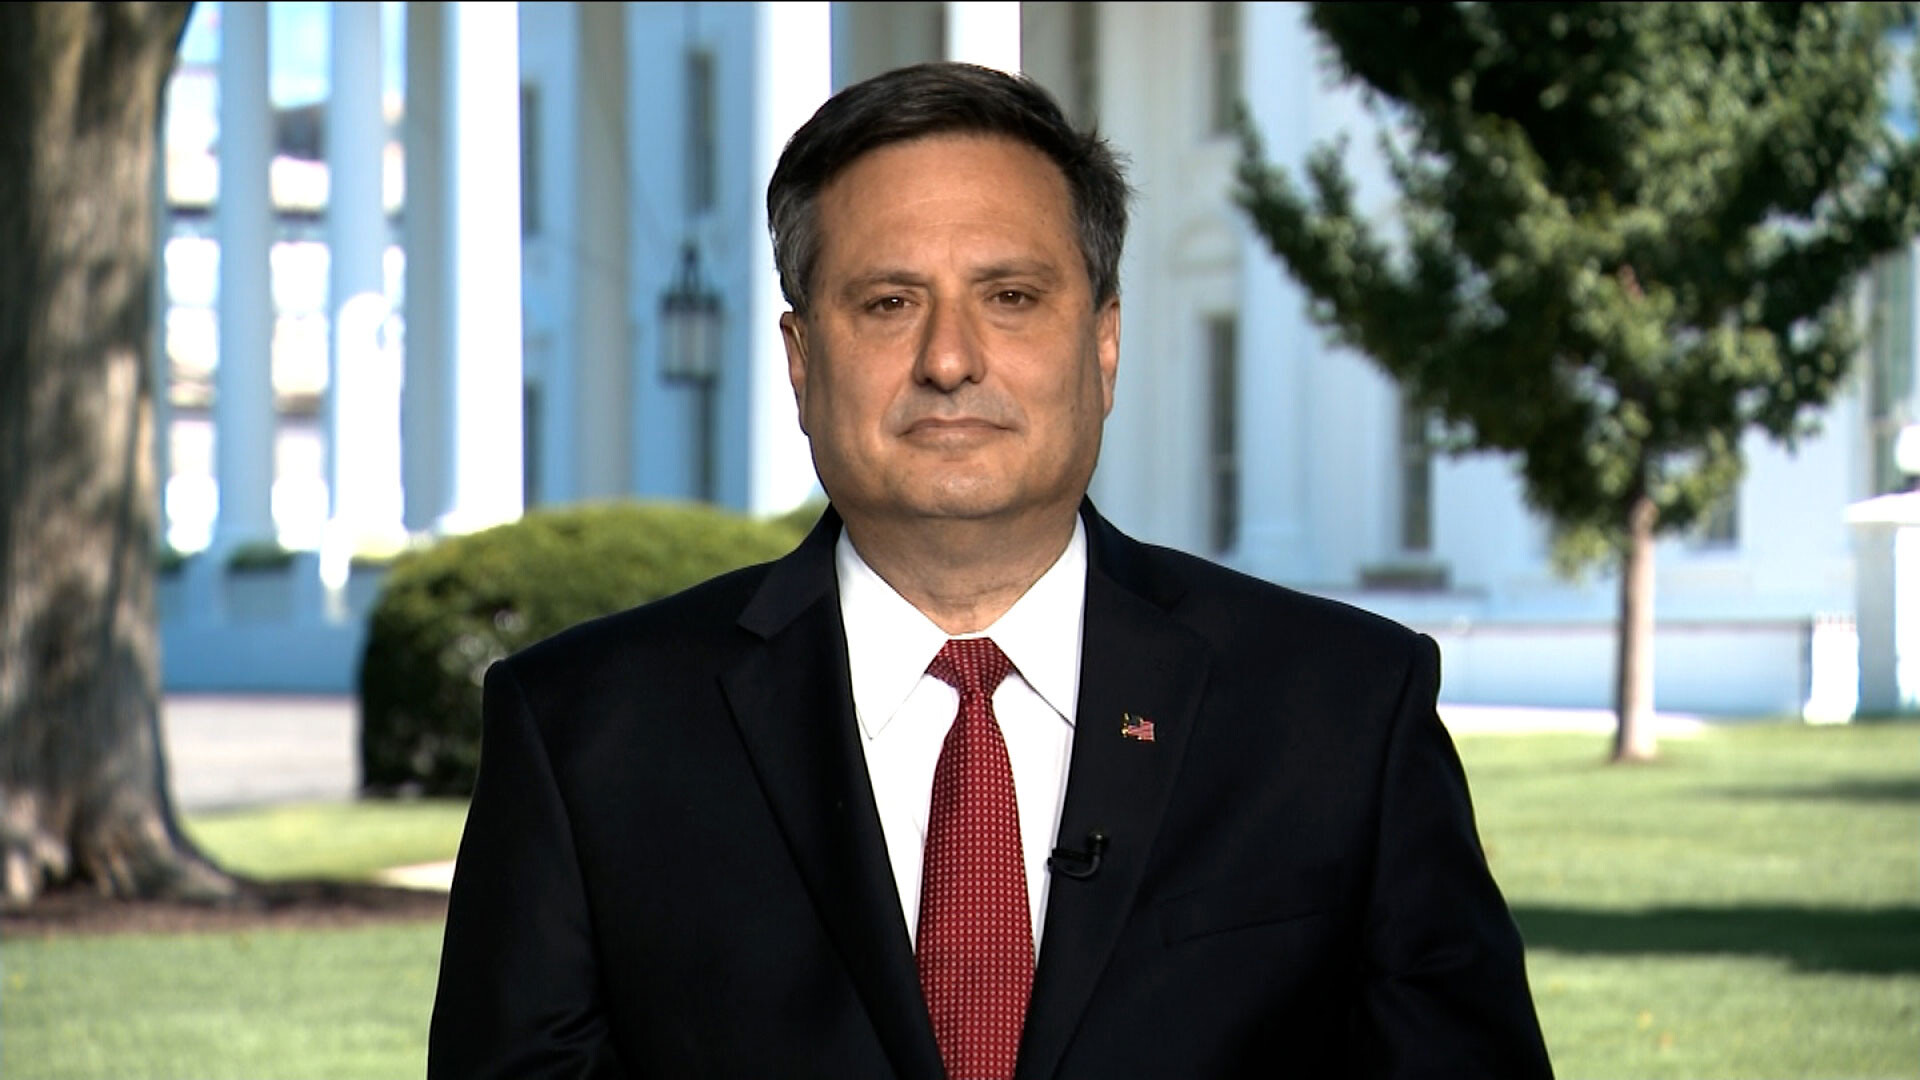 White House chief of staff: US is 'going to find ways' to get remaining Americans out of Afghanistan